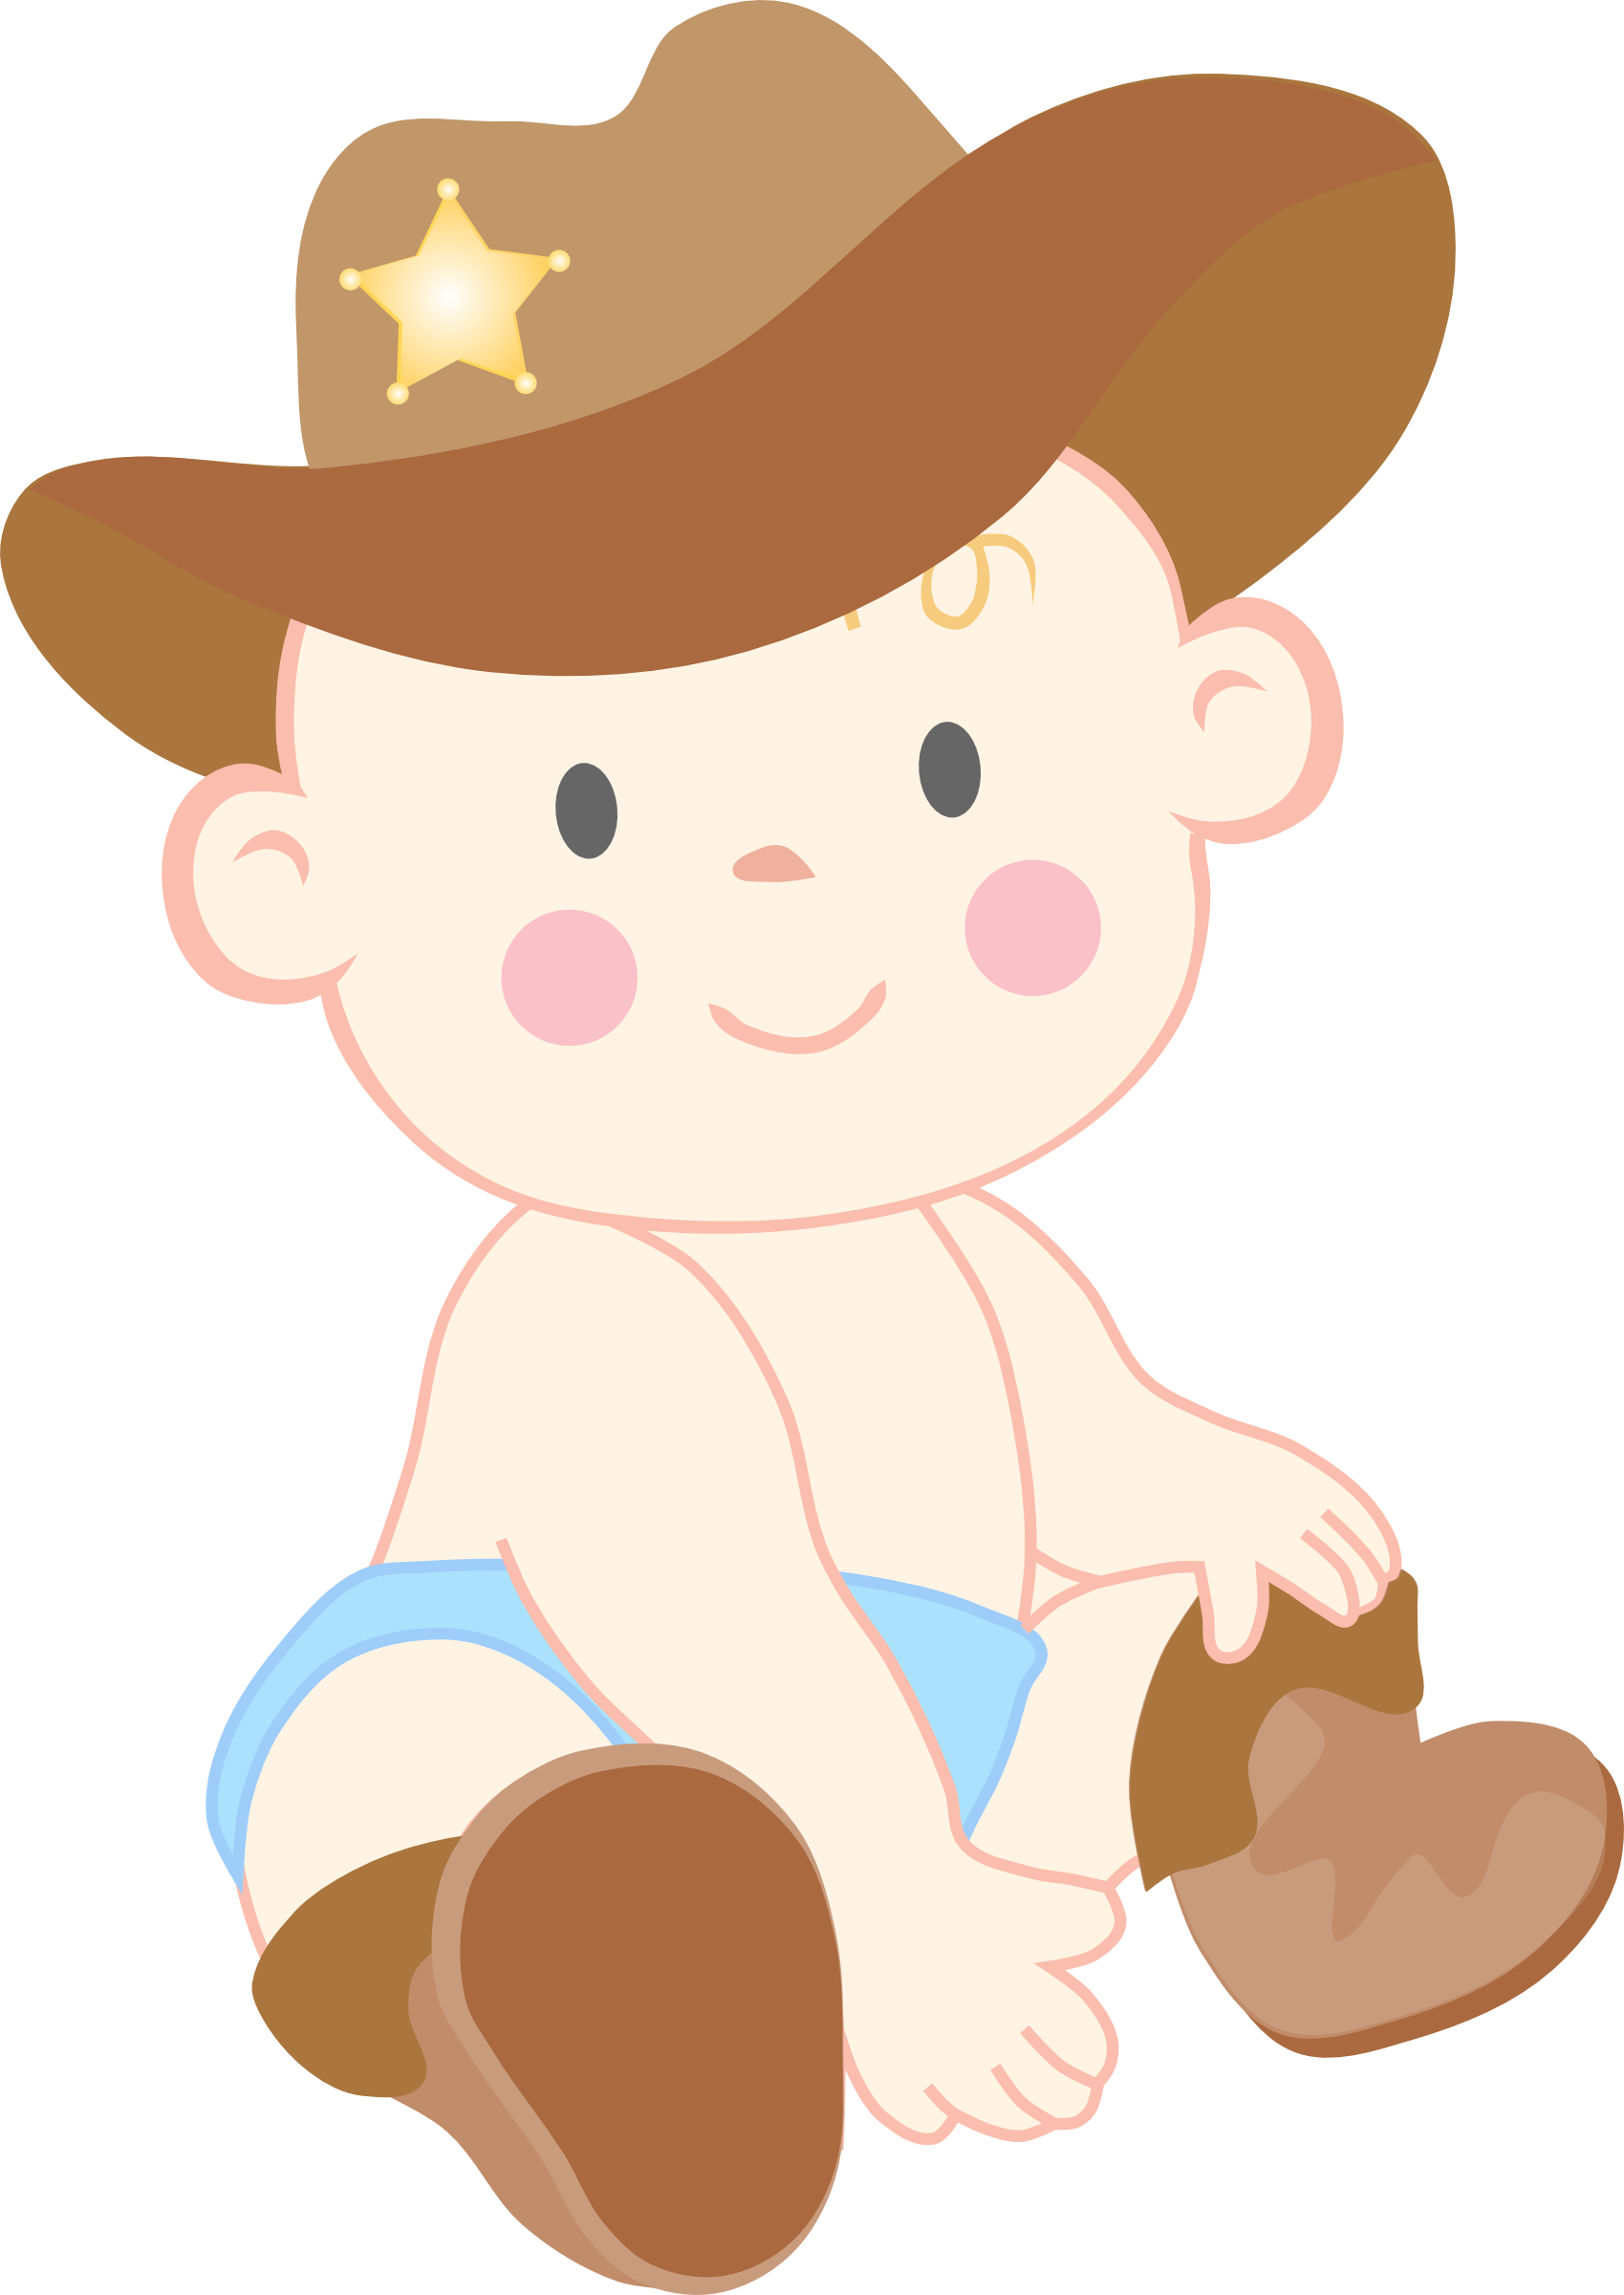 Pink western cross clipart image royalty free download Clip Art Baby Boy Hat Clipart - Clipart Kid | baby Q | Pinterest ... image royalty free download